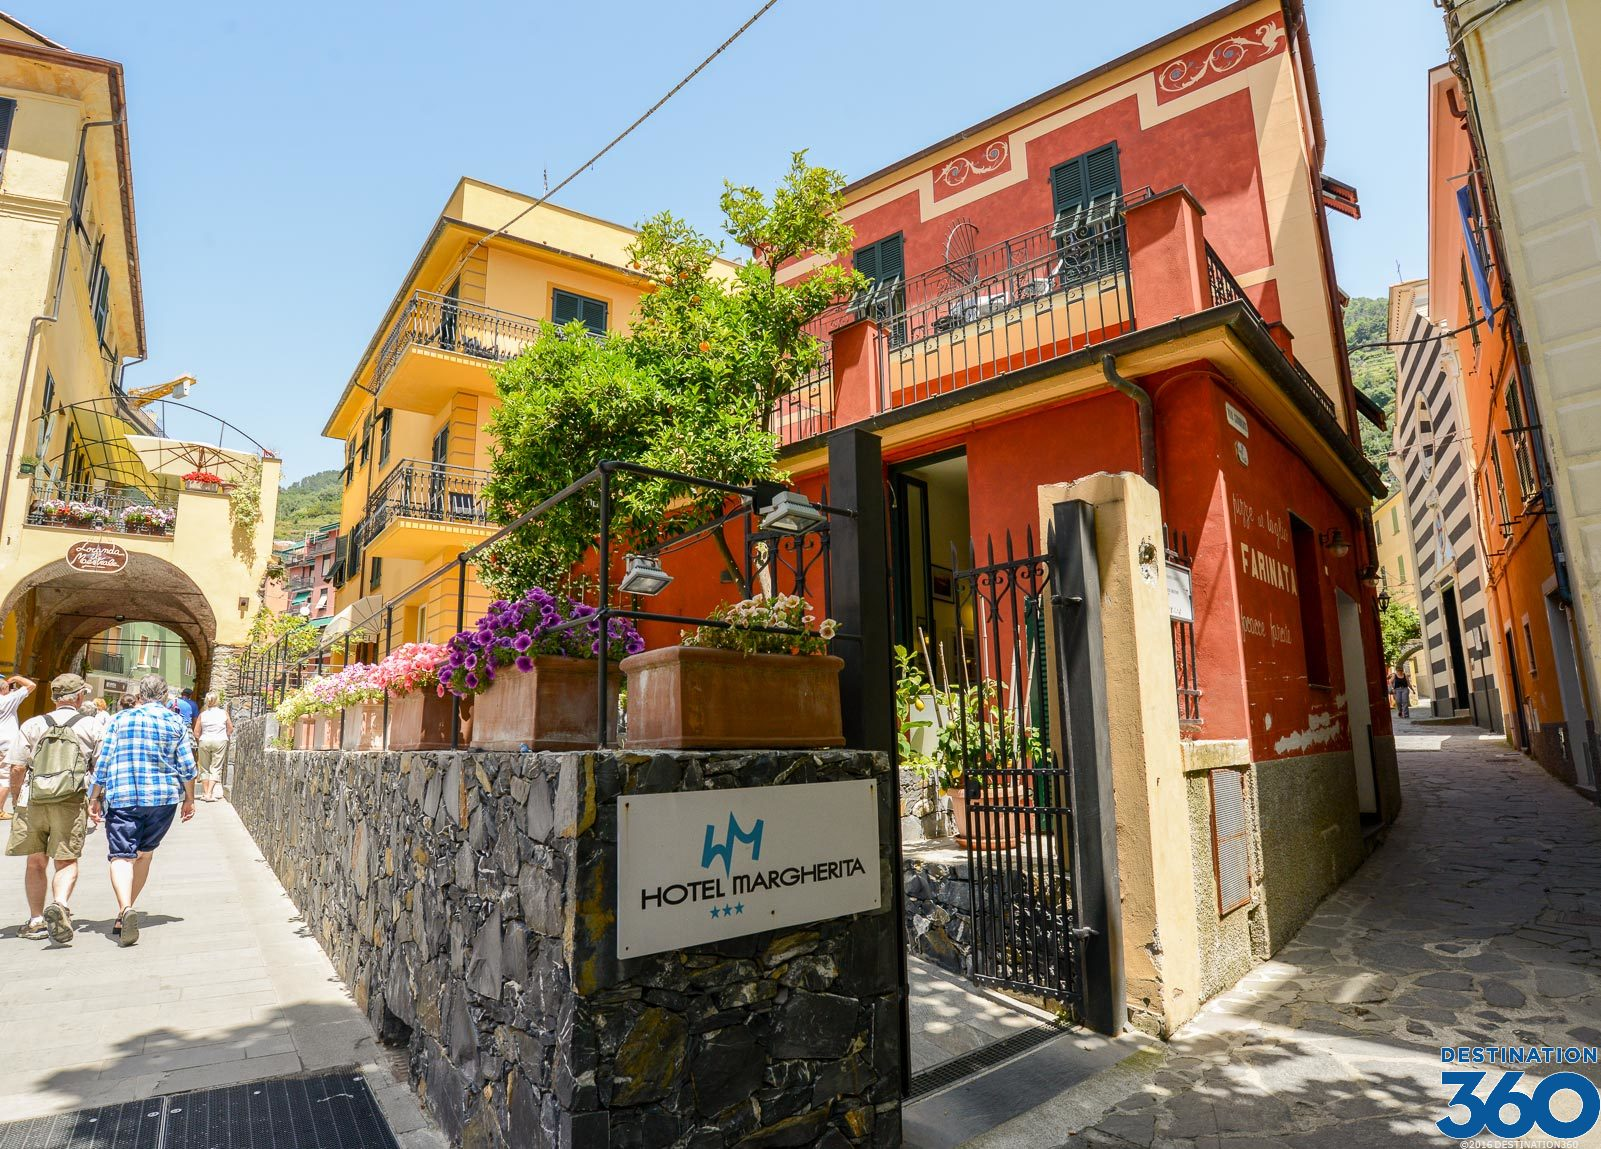 Hotels in Monterosso